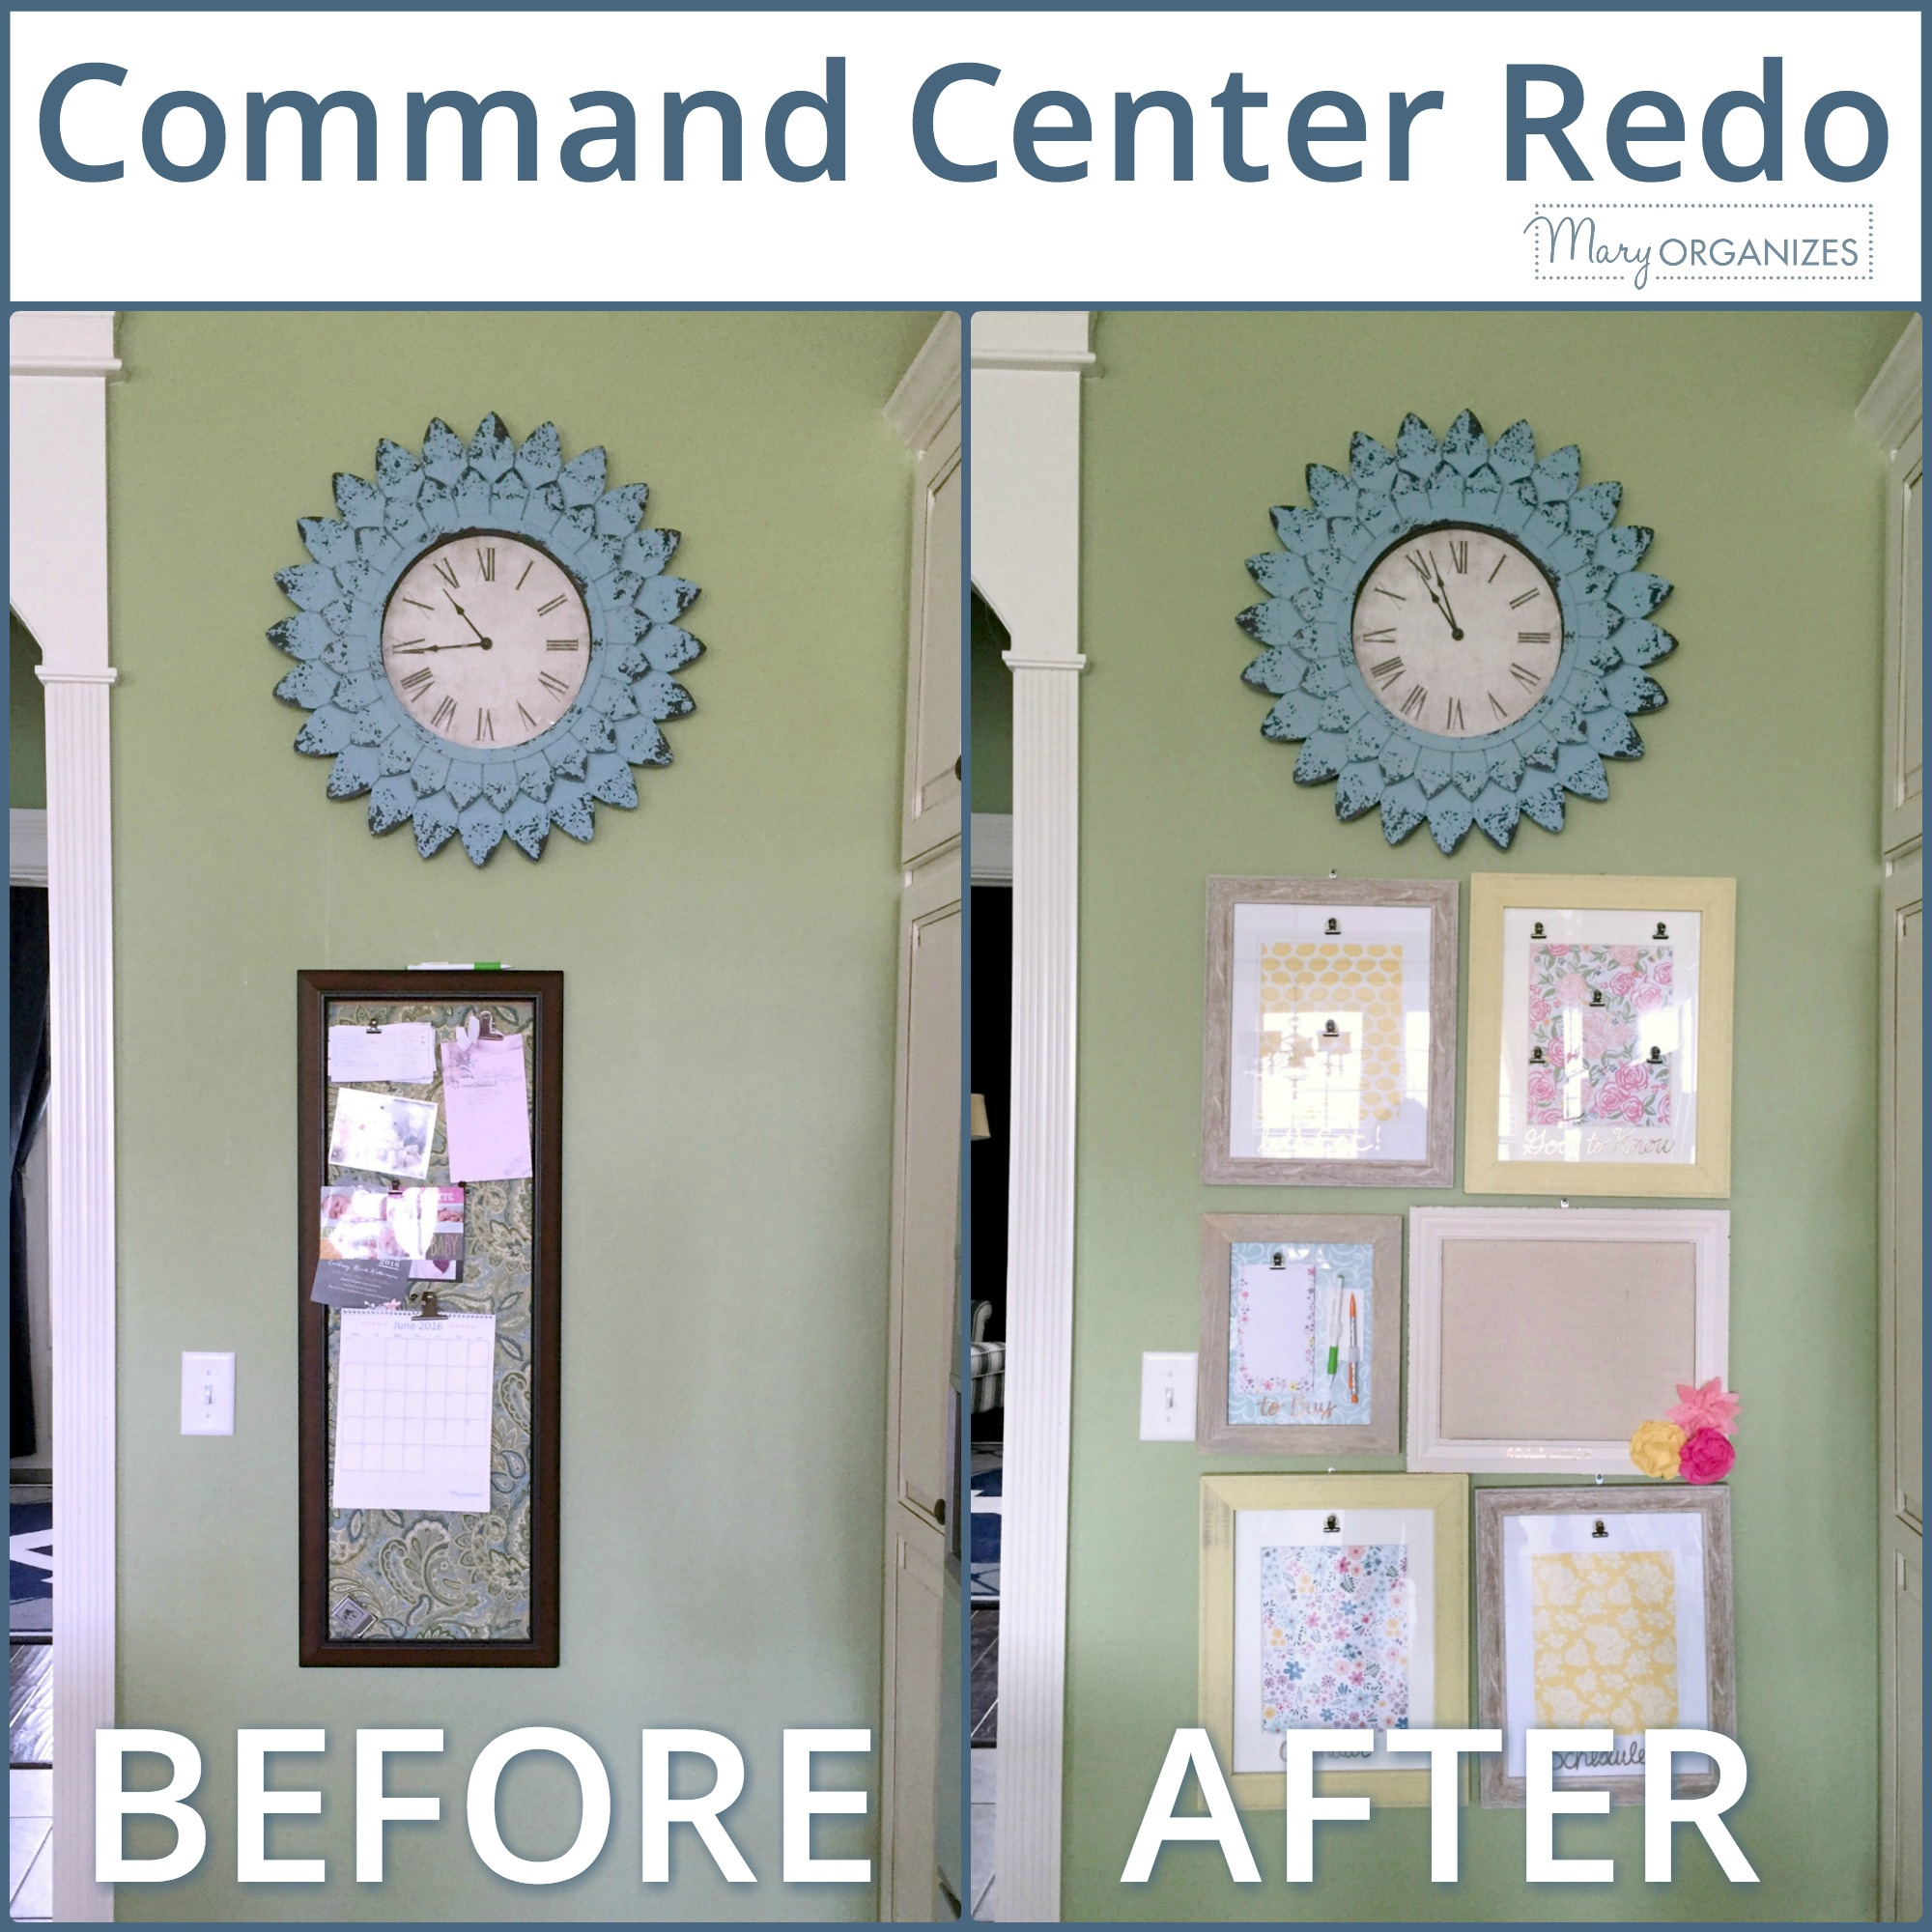 Mary ORGANIZES Command Center Before and After